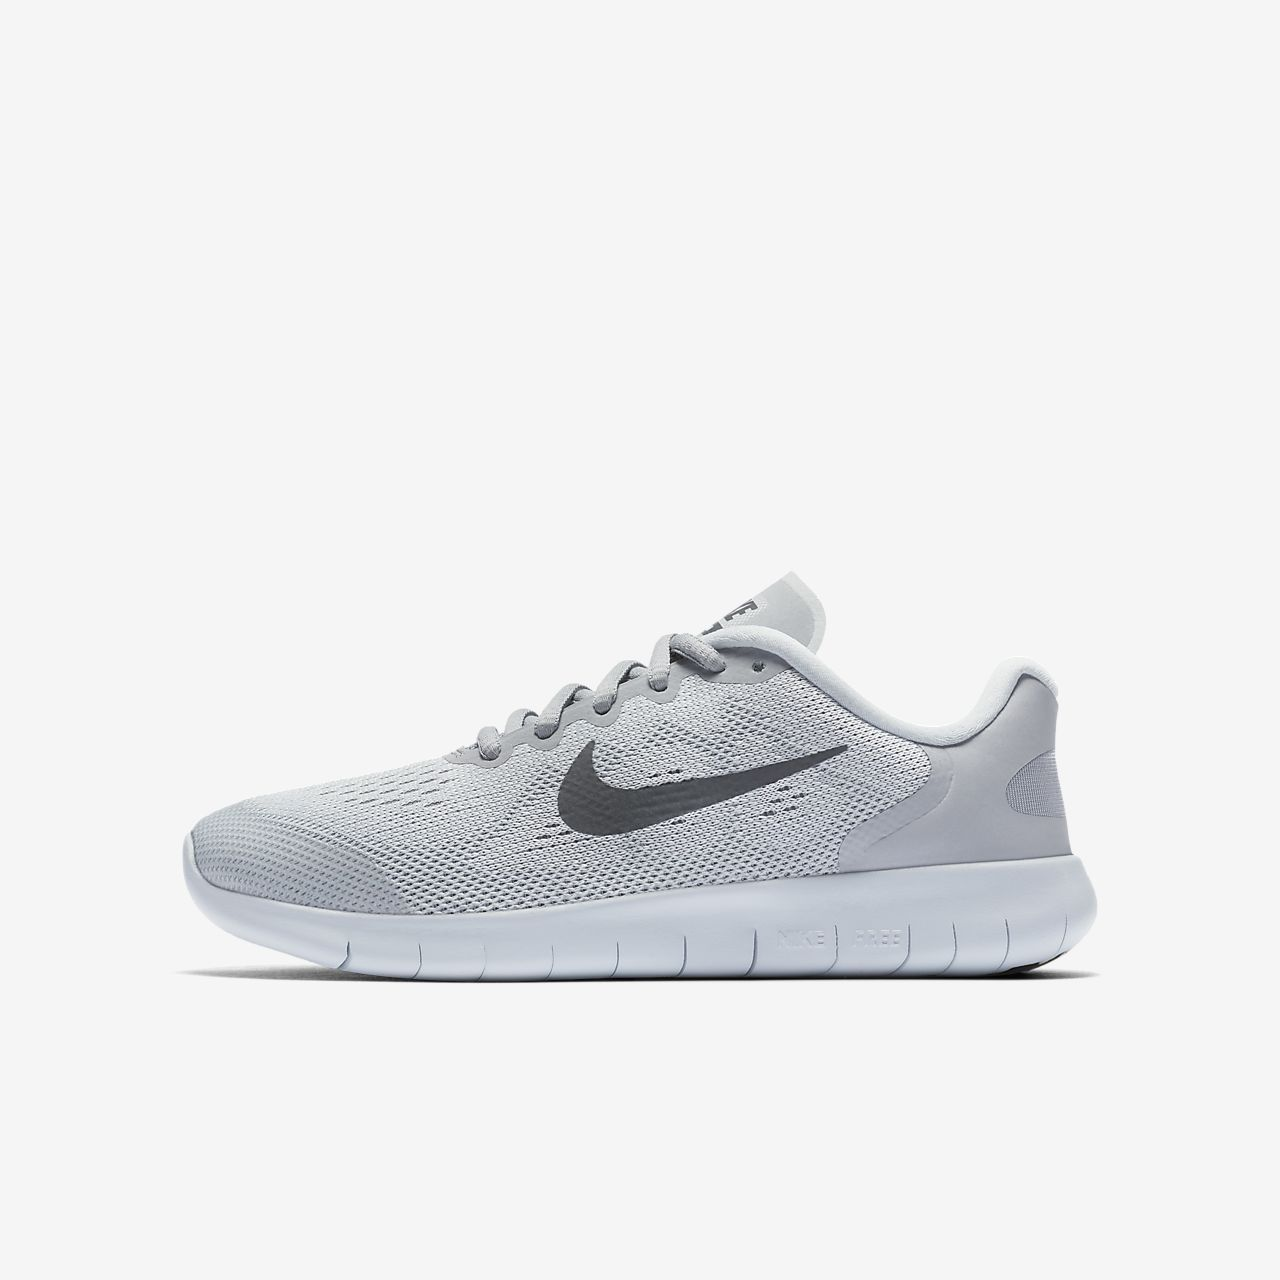 ... Nike Free RN 2017 Older Kids' Running Shoe